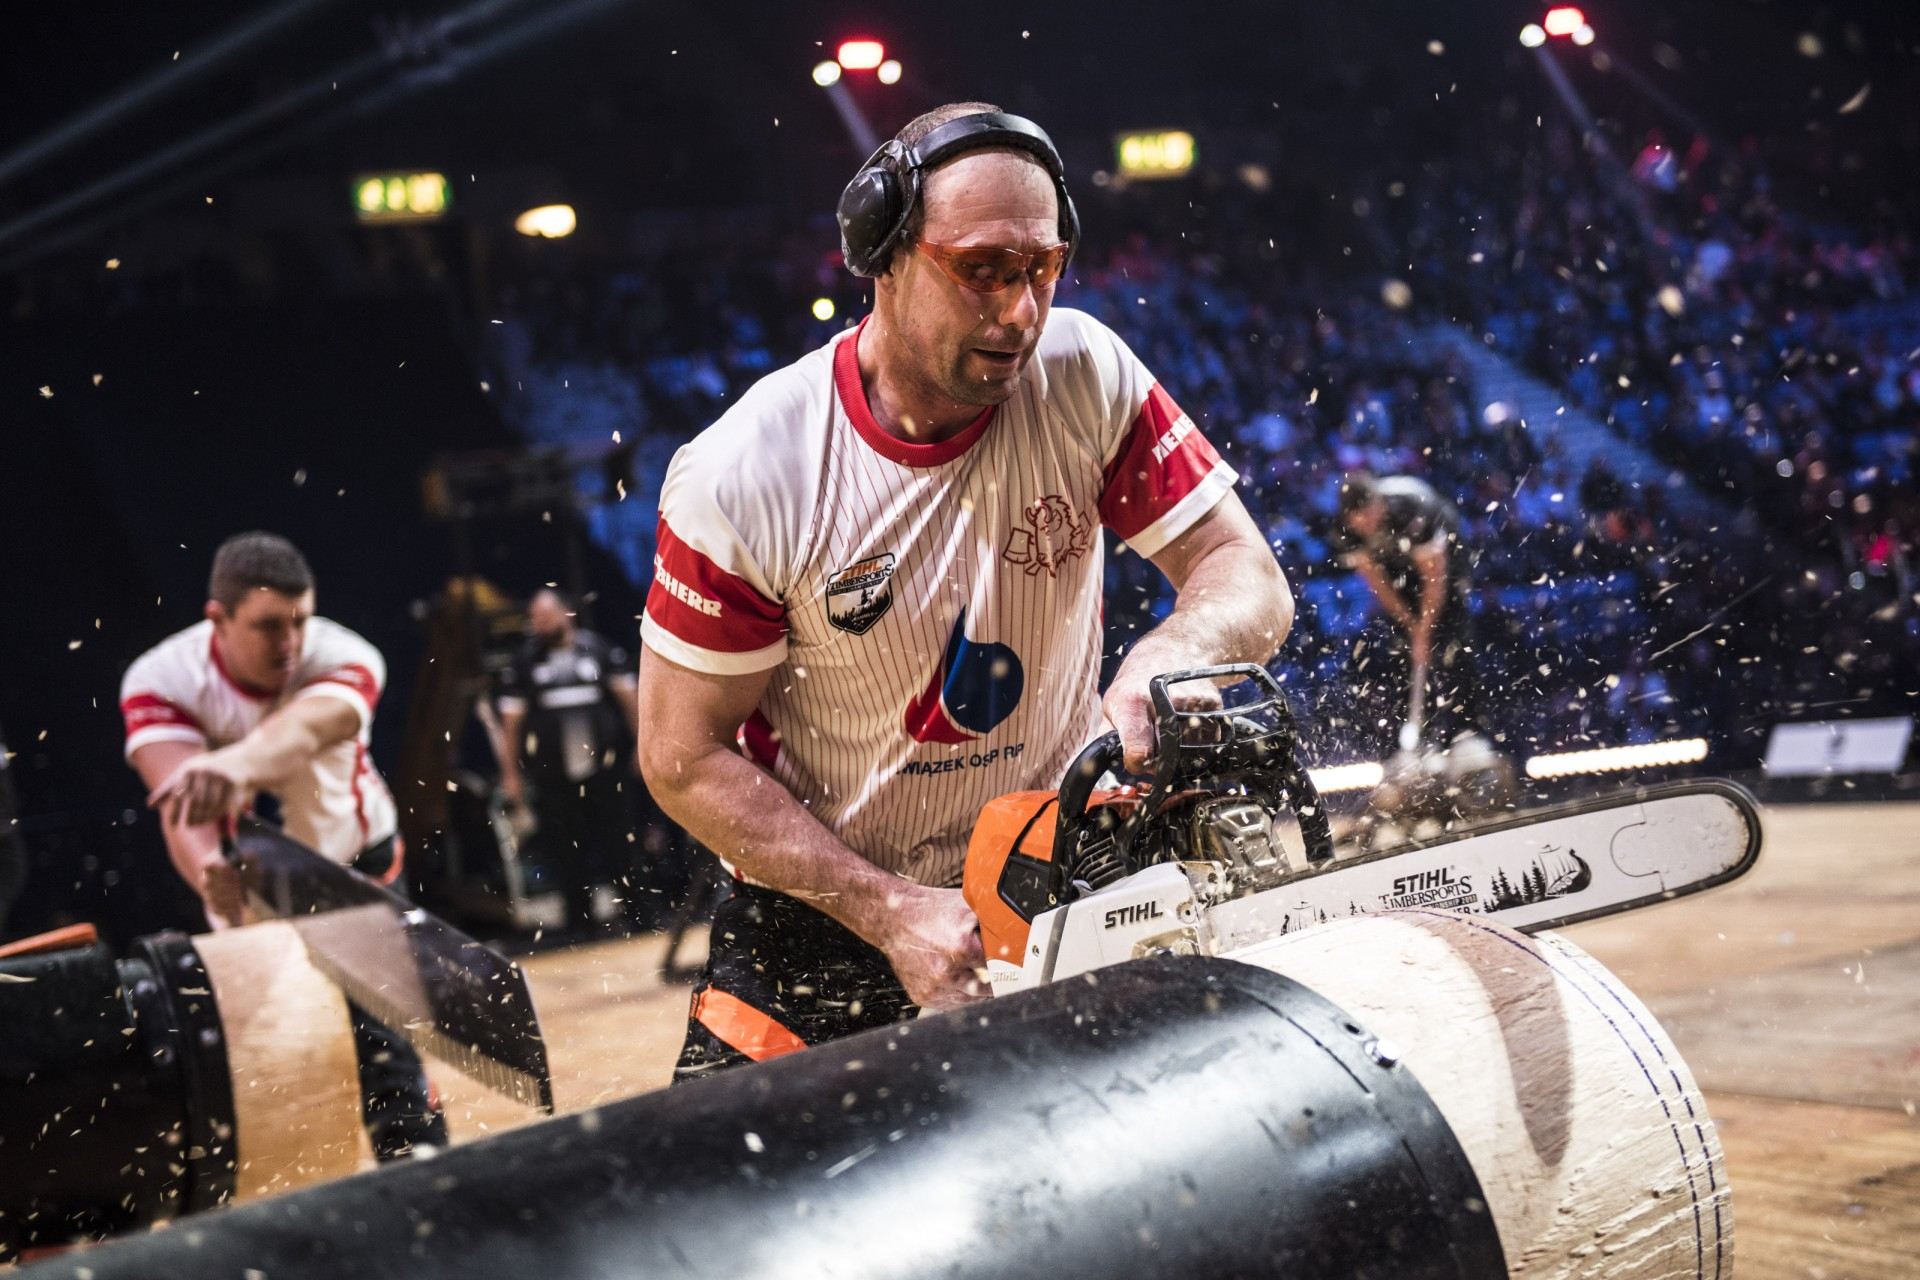 Team Poland competes during the Team Competition of the Stihl Timbersports World Championships at the Hakons Hall in Lillehammer, Norway on November 3, 2017.